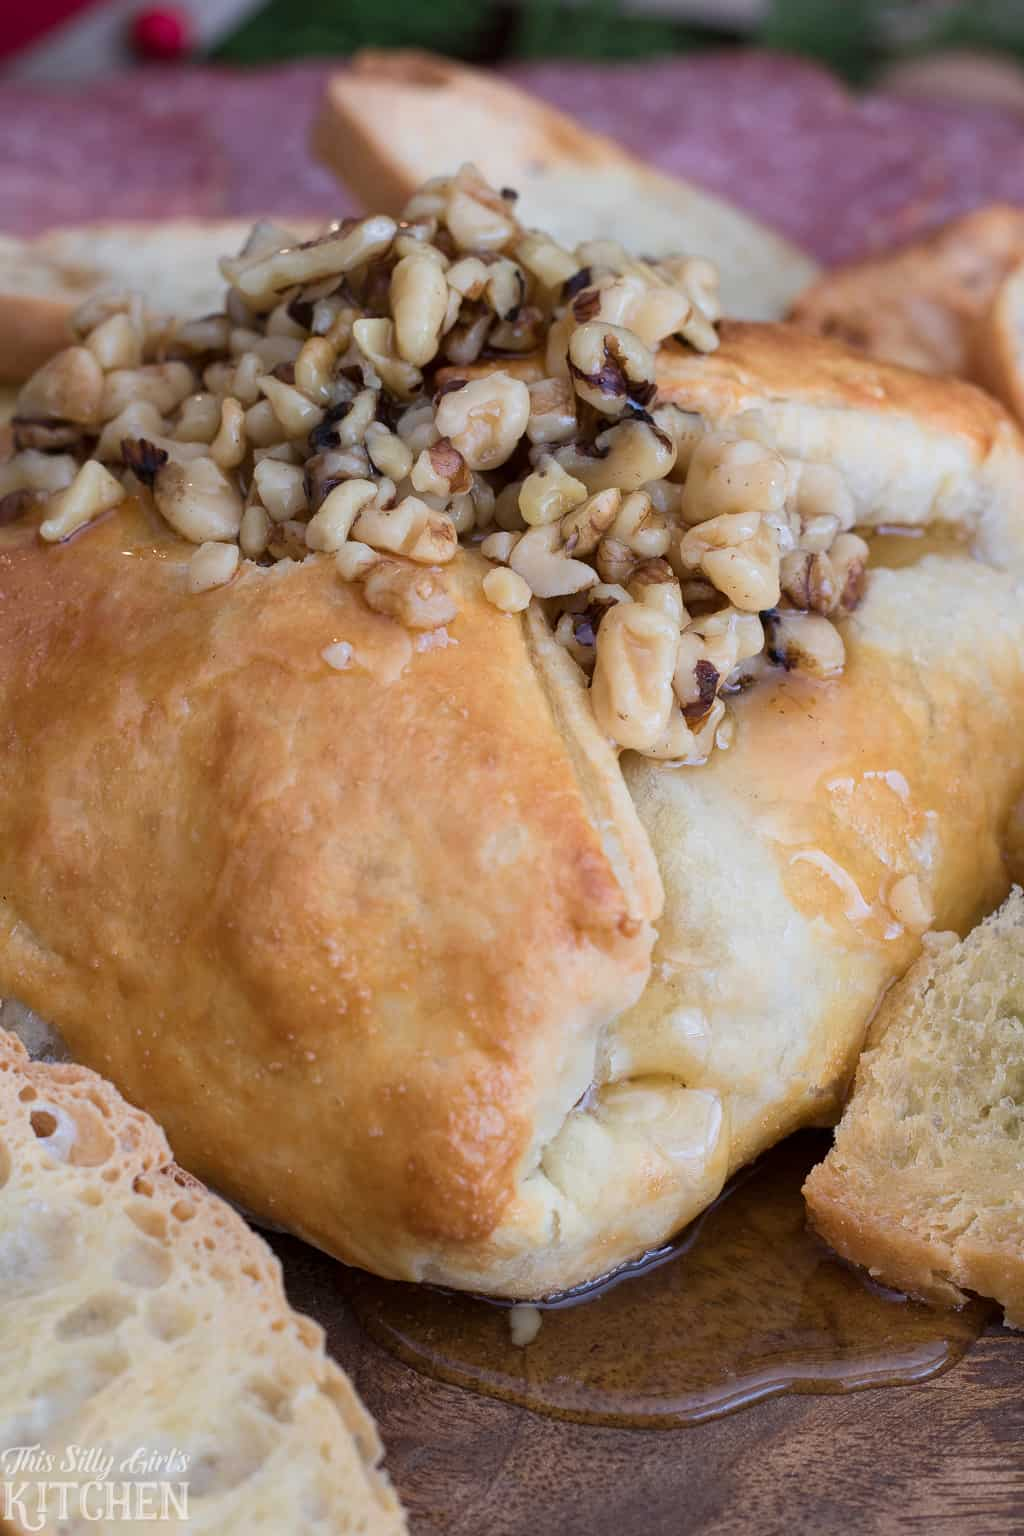 Wrapped Baked Brie Topped with Honey and Walnuts